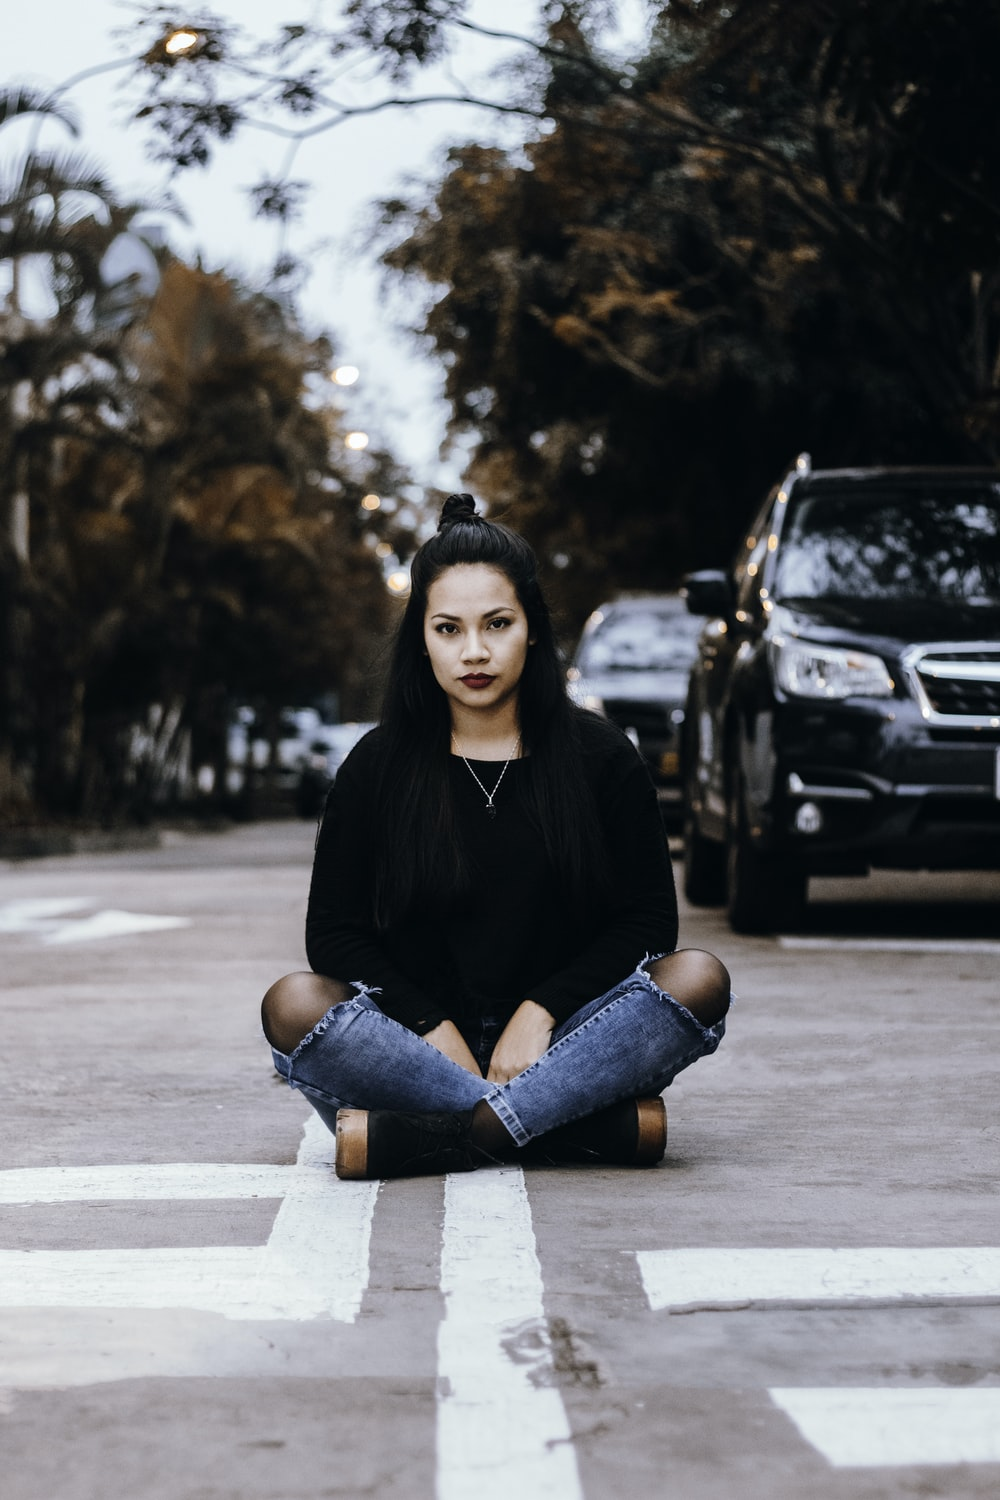 focus photography of woman sitting on gray concrete road during daytime